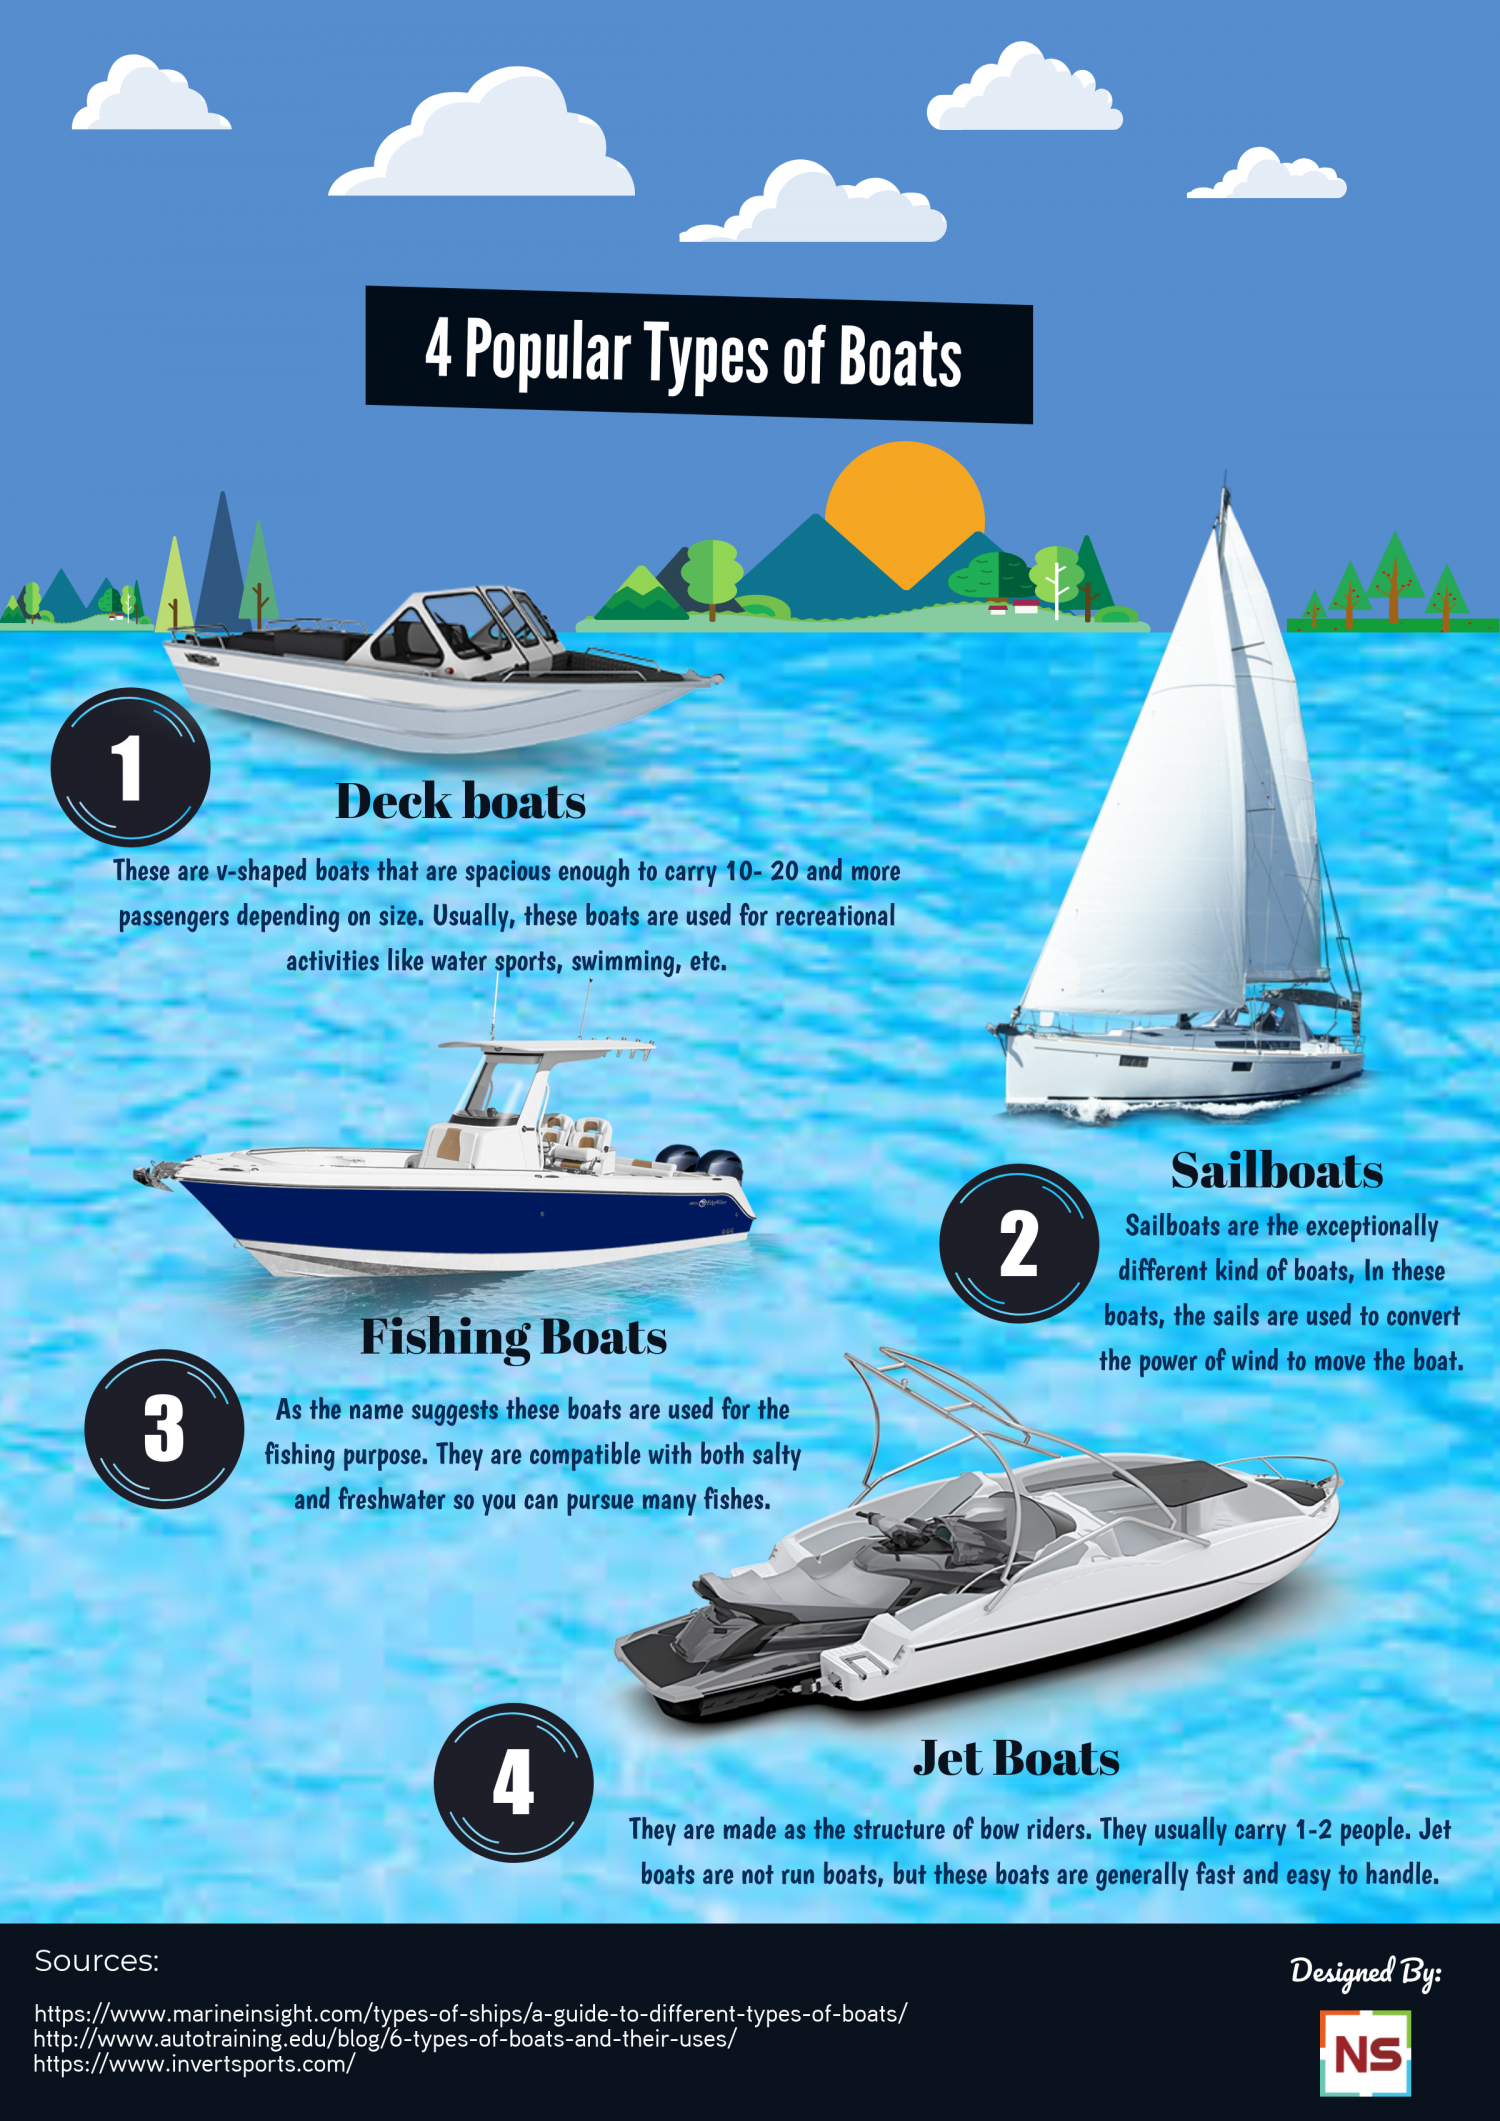 4 Popular Types of Boats Infographic